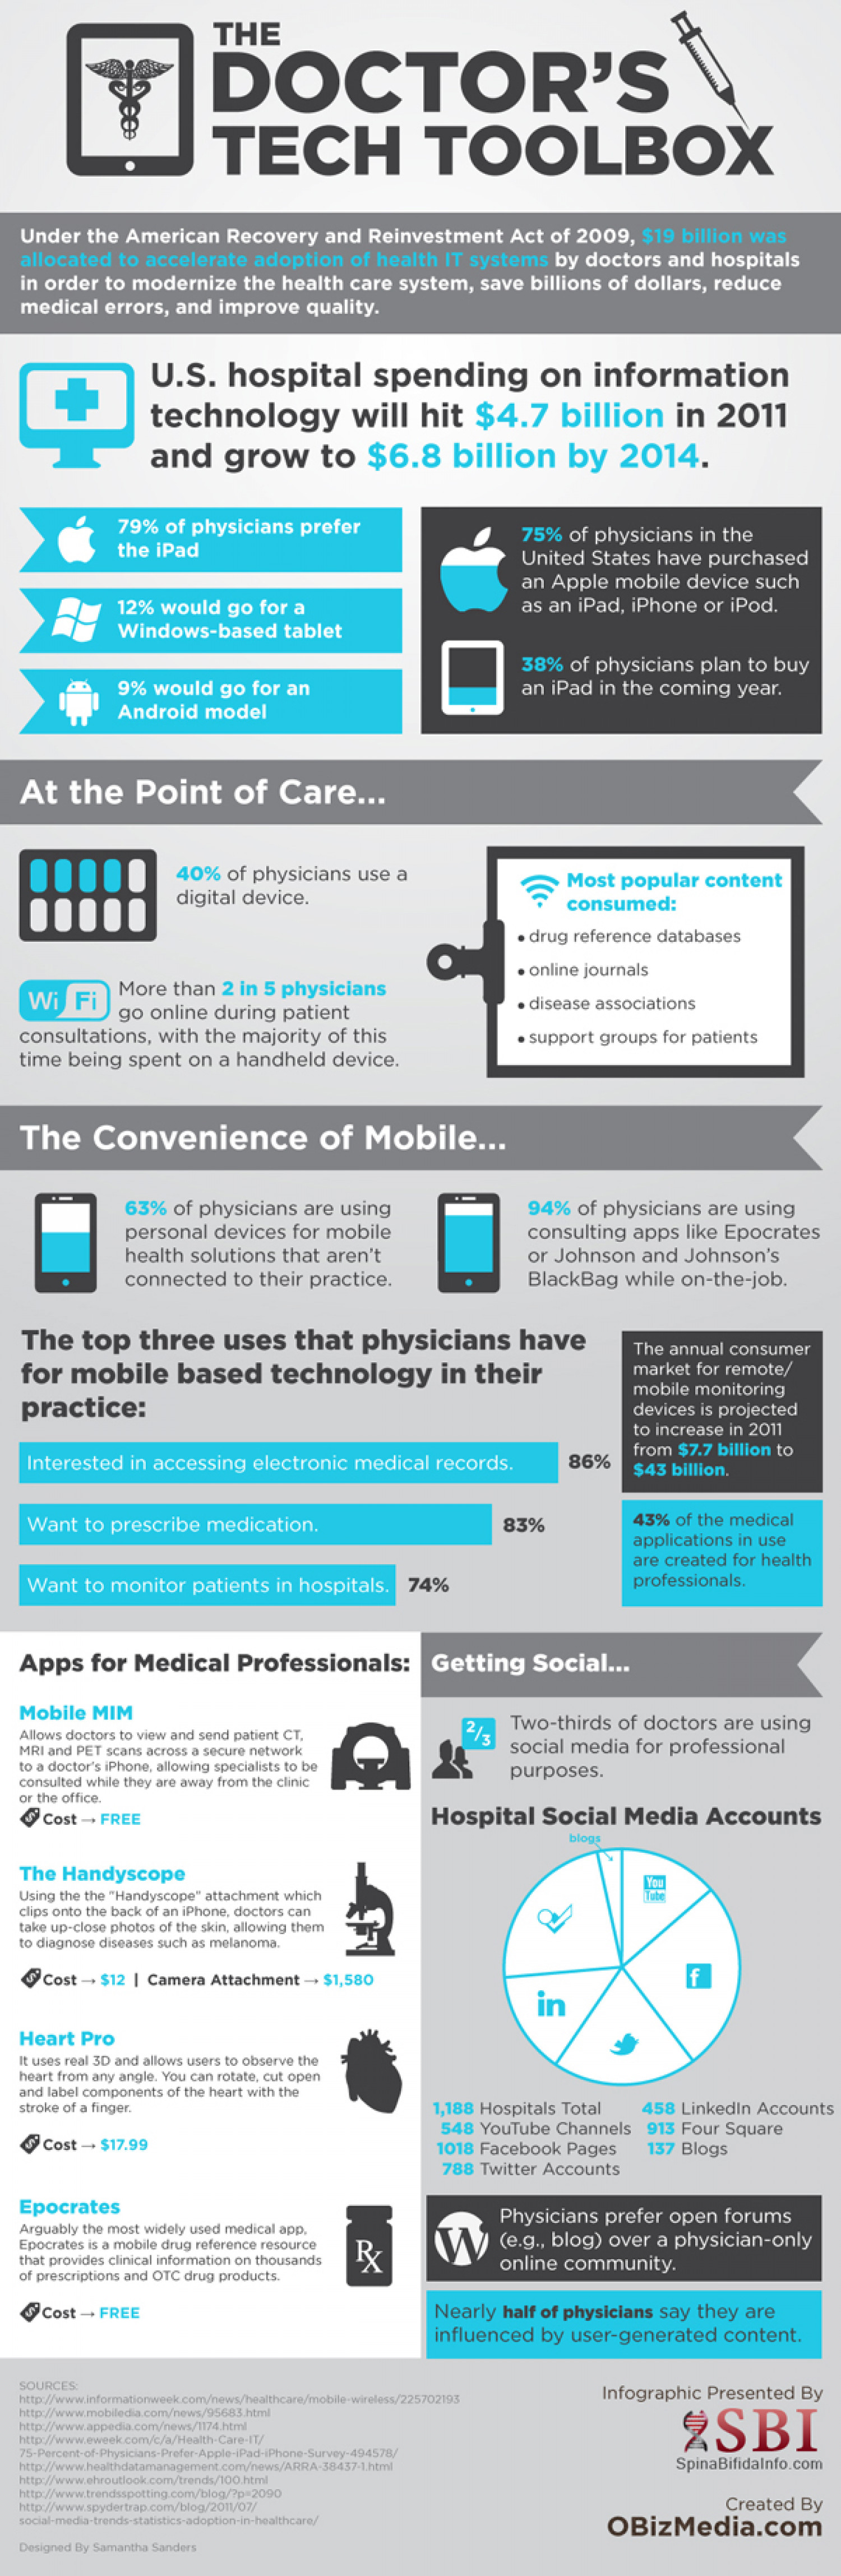 The Doctor's Tech Toolbox  Infographic